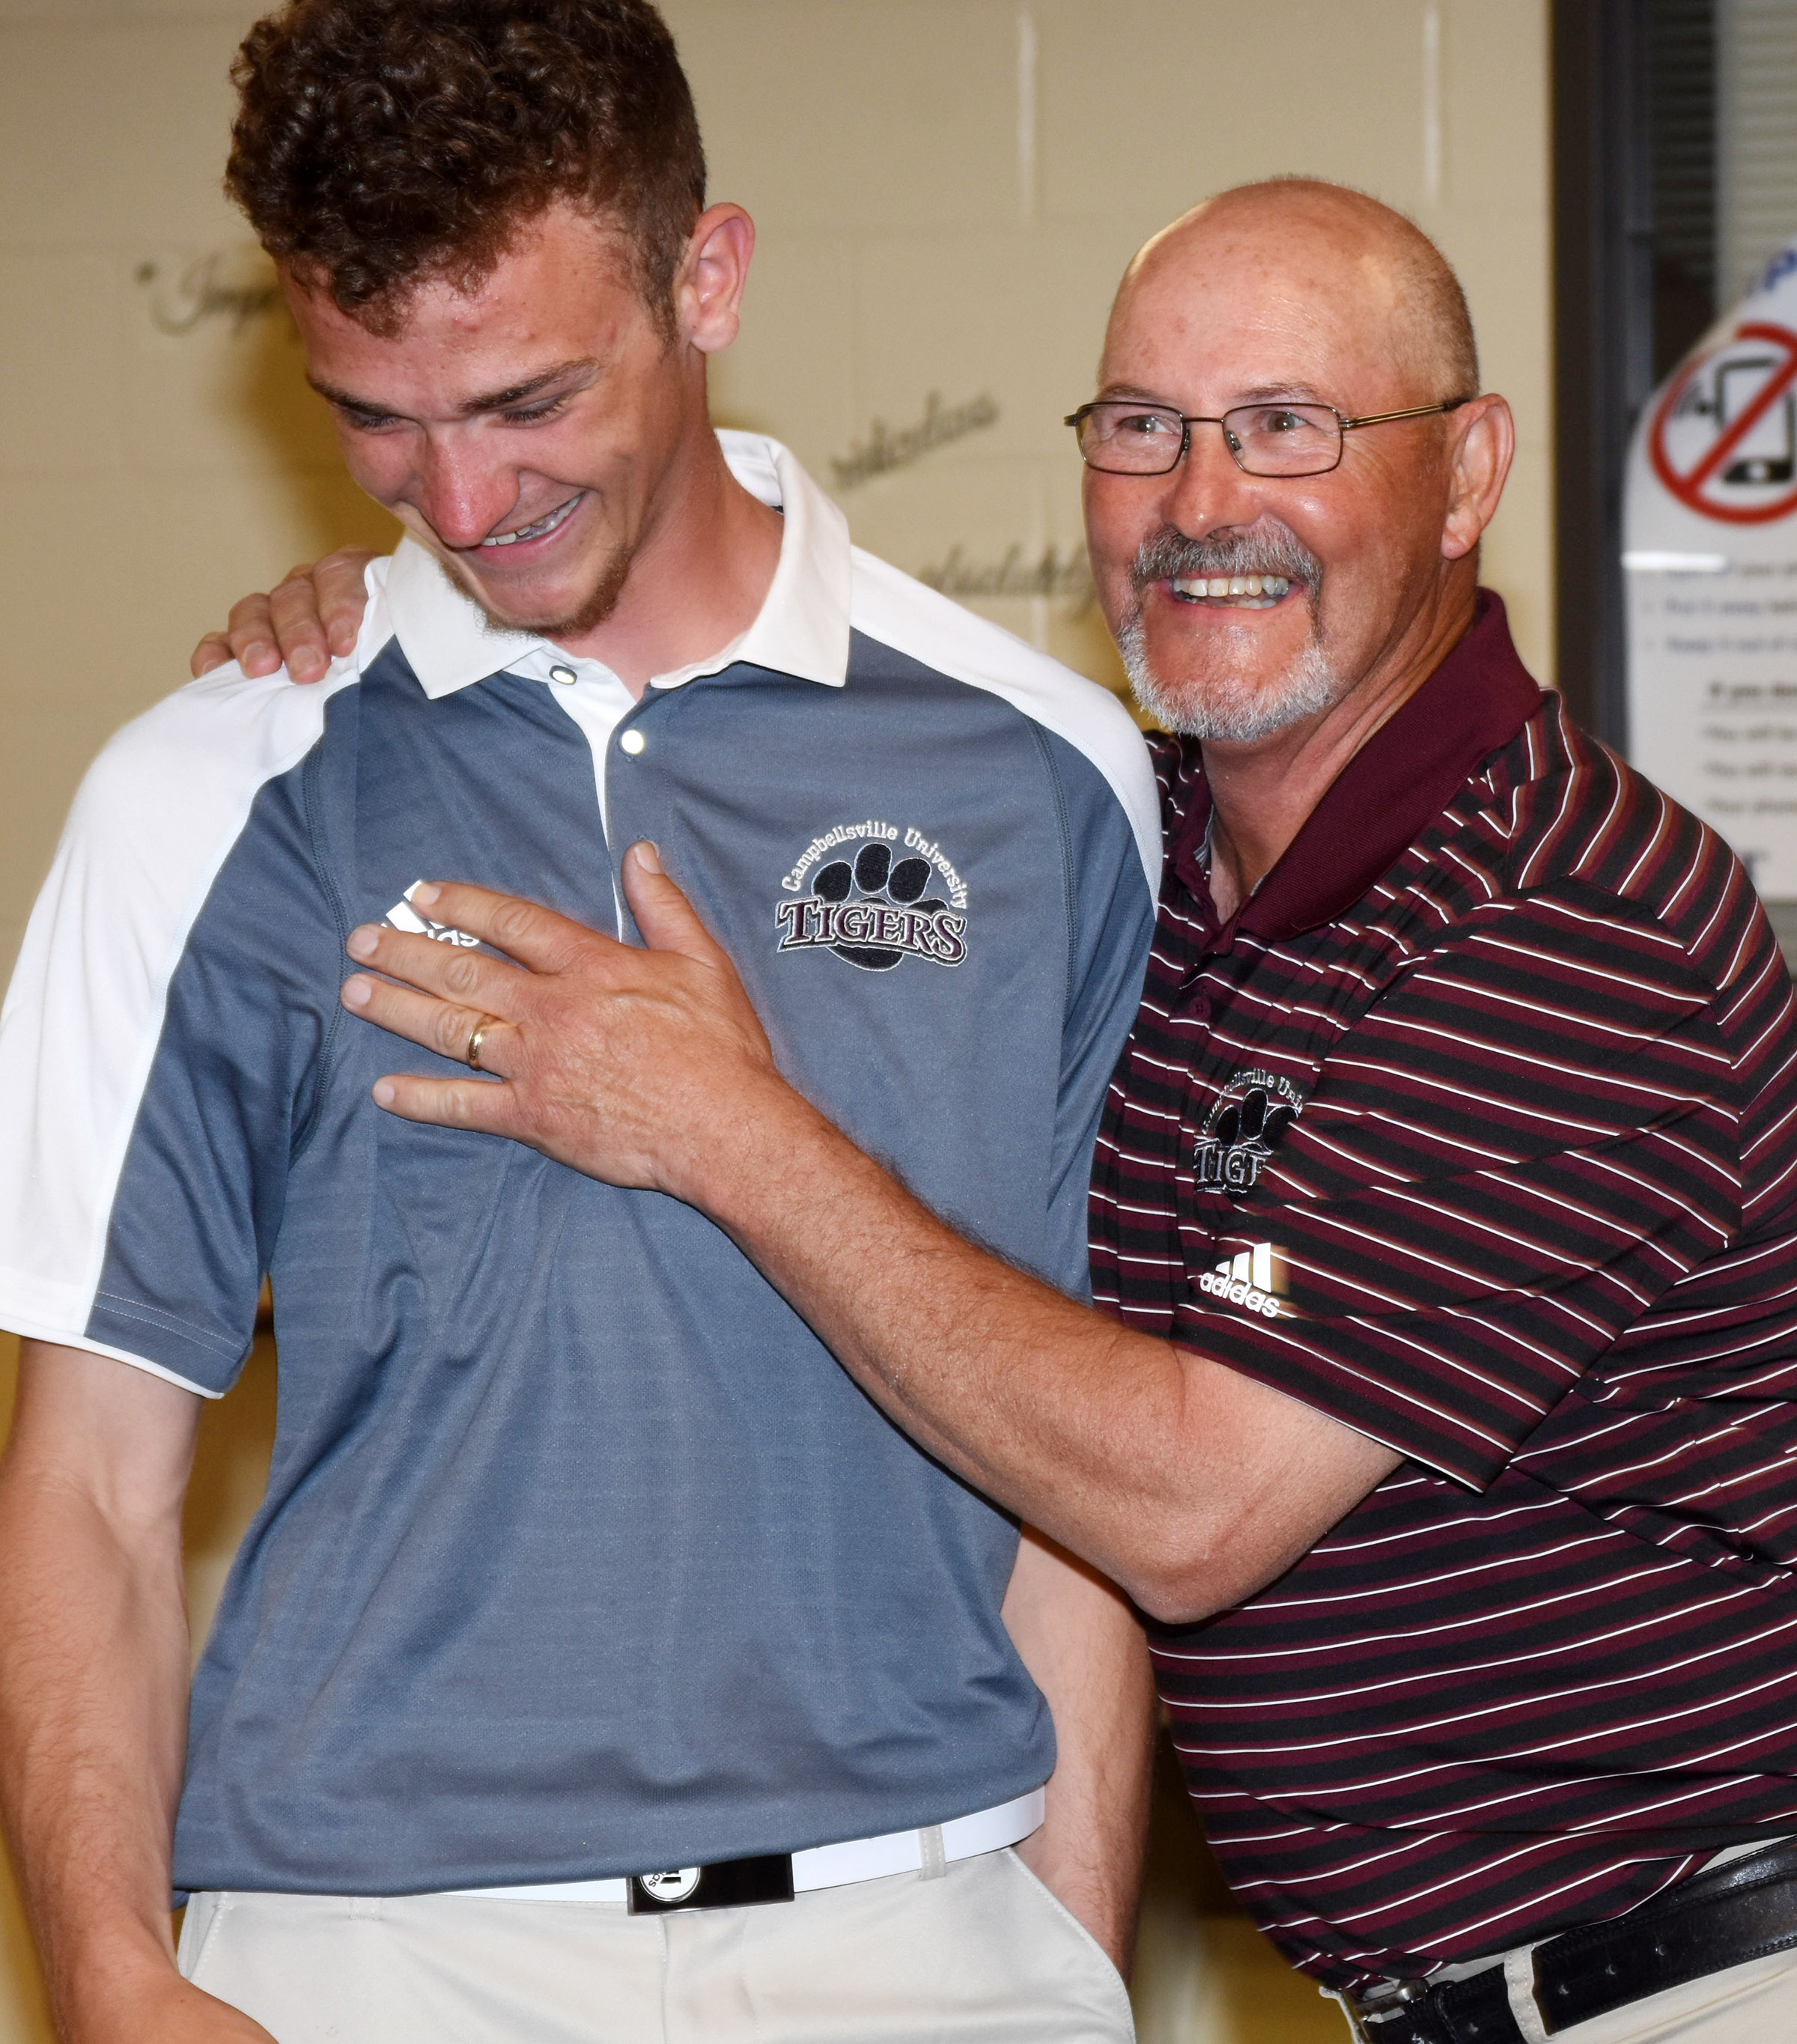 Campbellsville University men's golf head coach Jim Ward congratulates CHS senior Connor Wilson, who will once again play on his team. Ward coached Wilson for two years during his high school playing career.